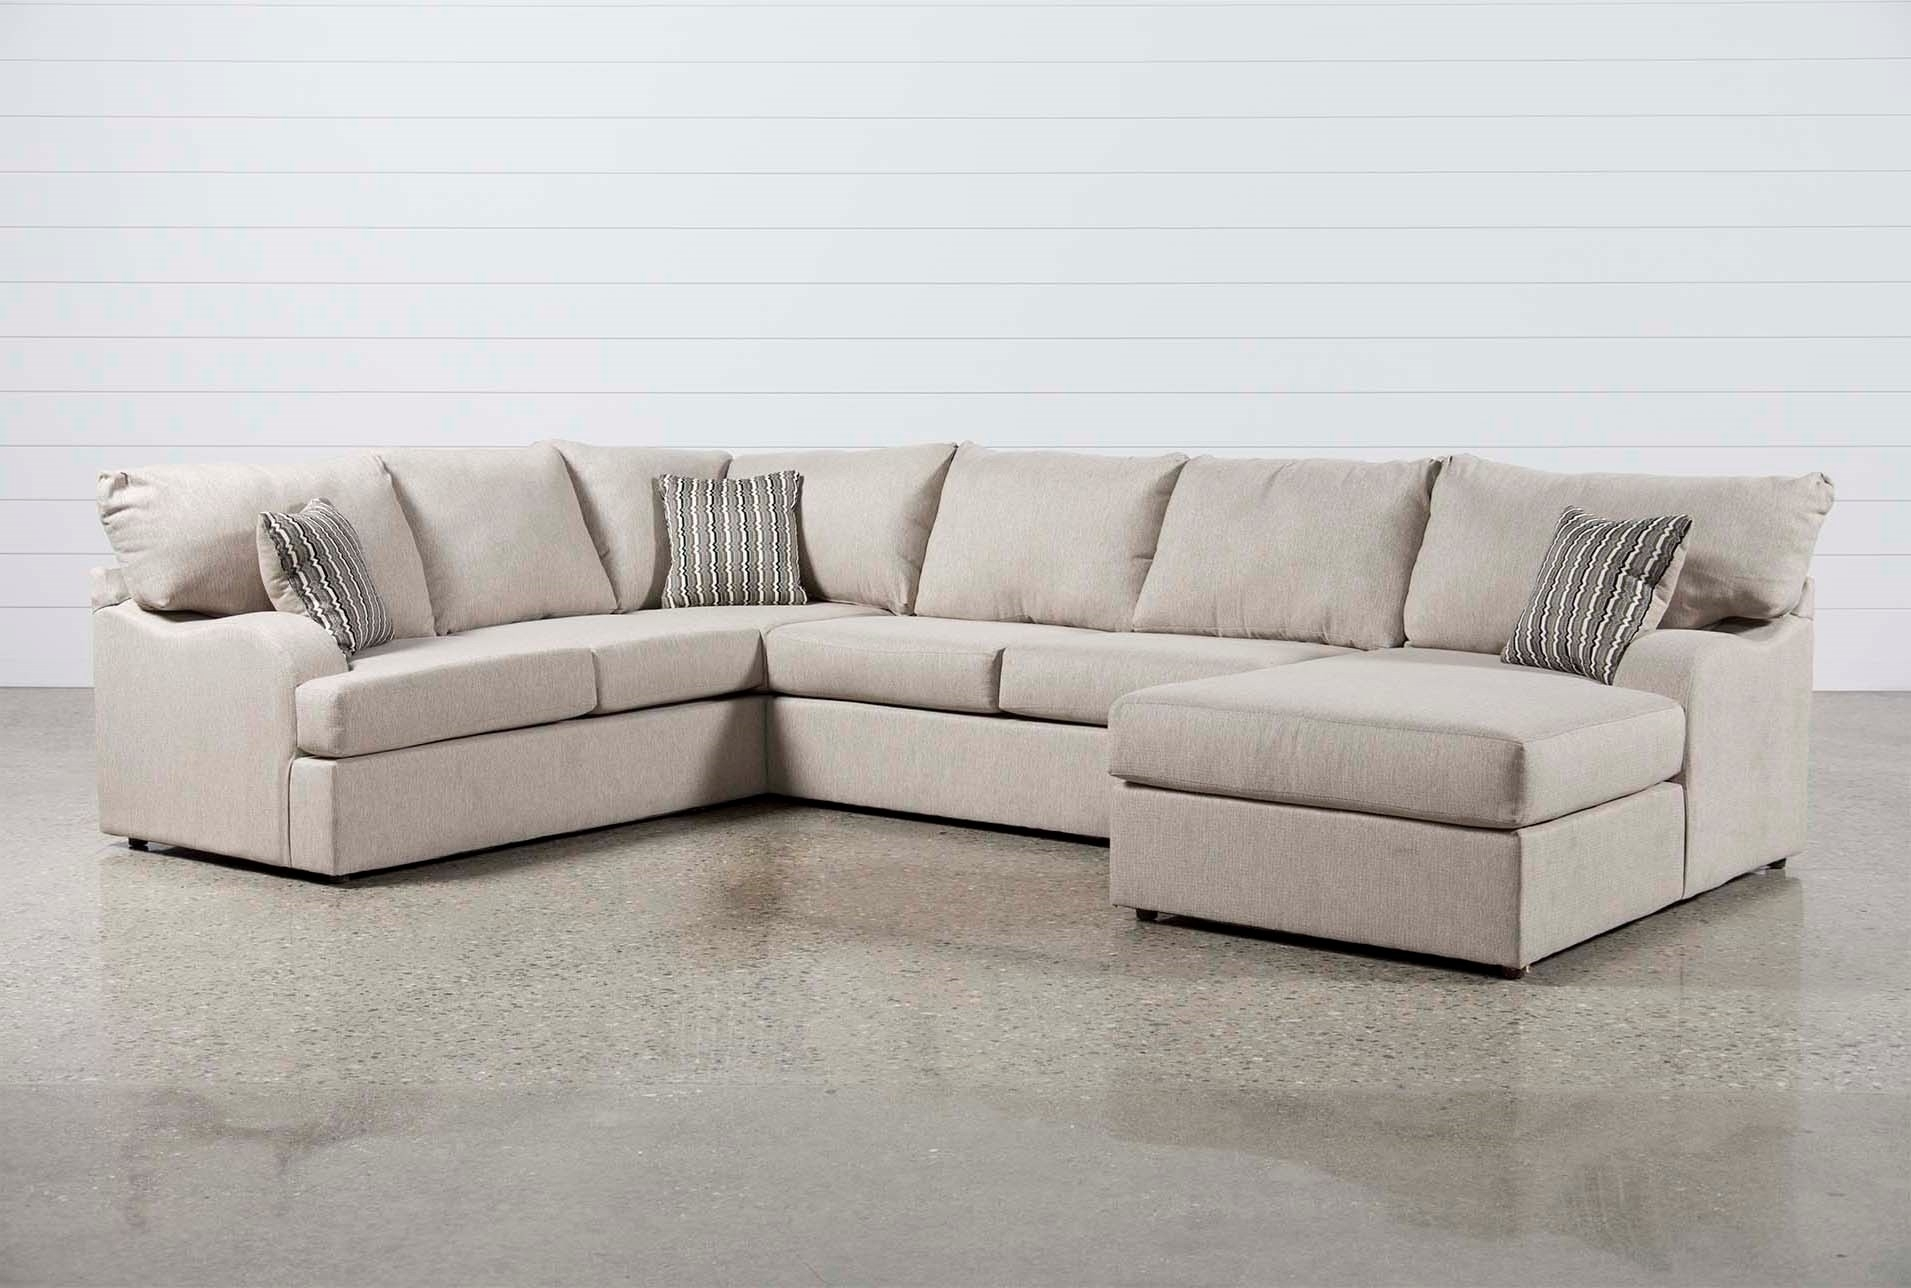 Raf Sectional Turdur 3 Piece W Loveseat Living Spaces 223462 0 Jpg for Turdur 3 Piece Sectionals With Raf Loveseat (Image 21 of 30)